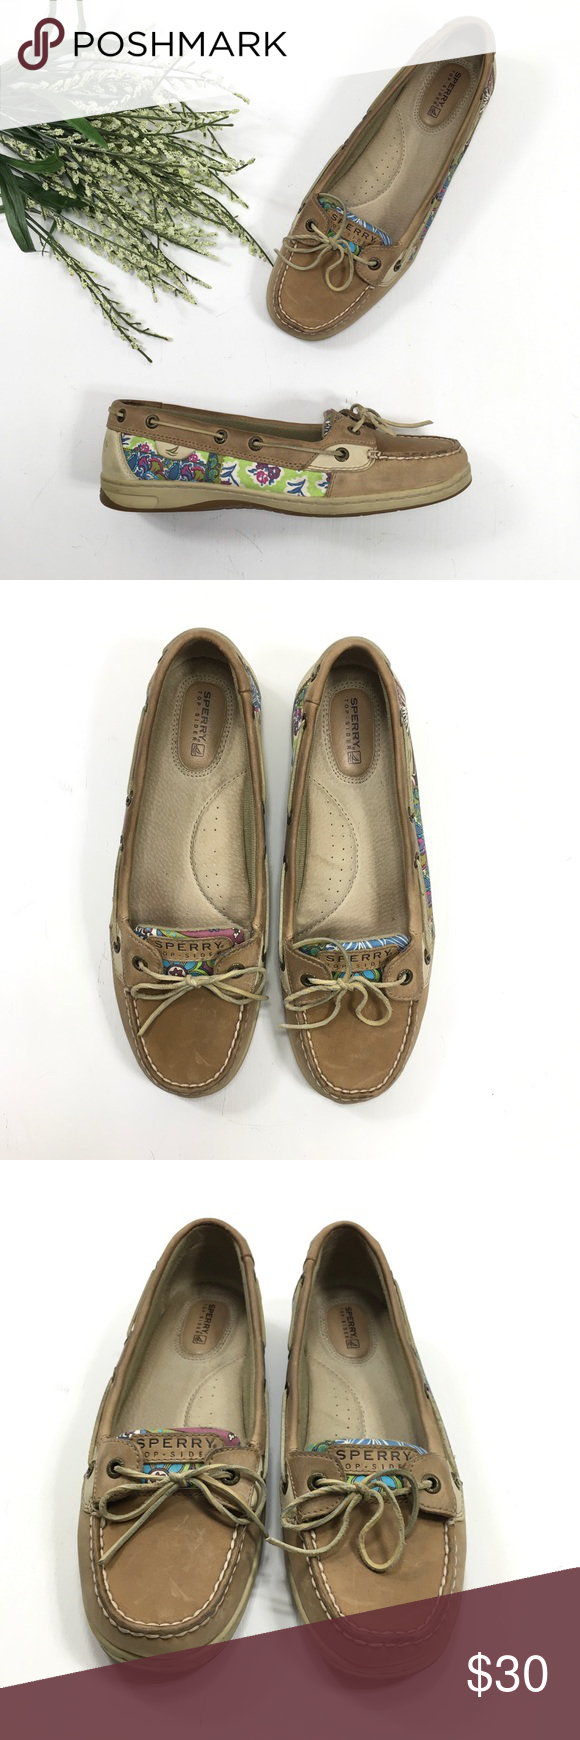 Sperry Top-Sider | Tan Slip On Floral